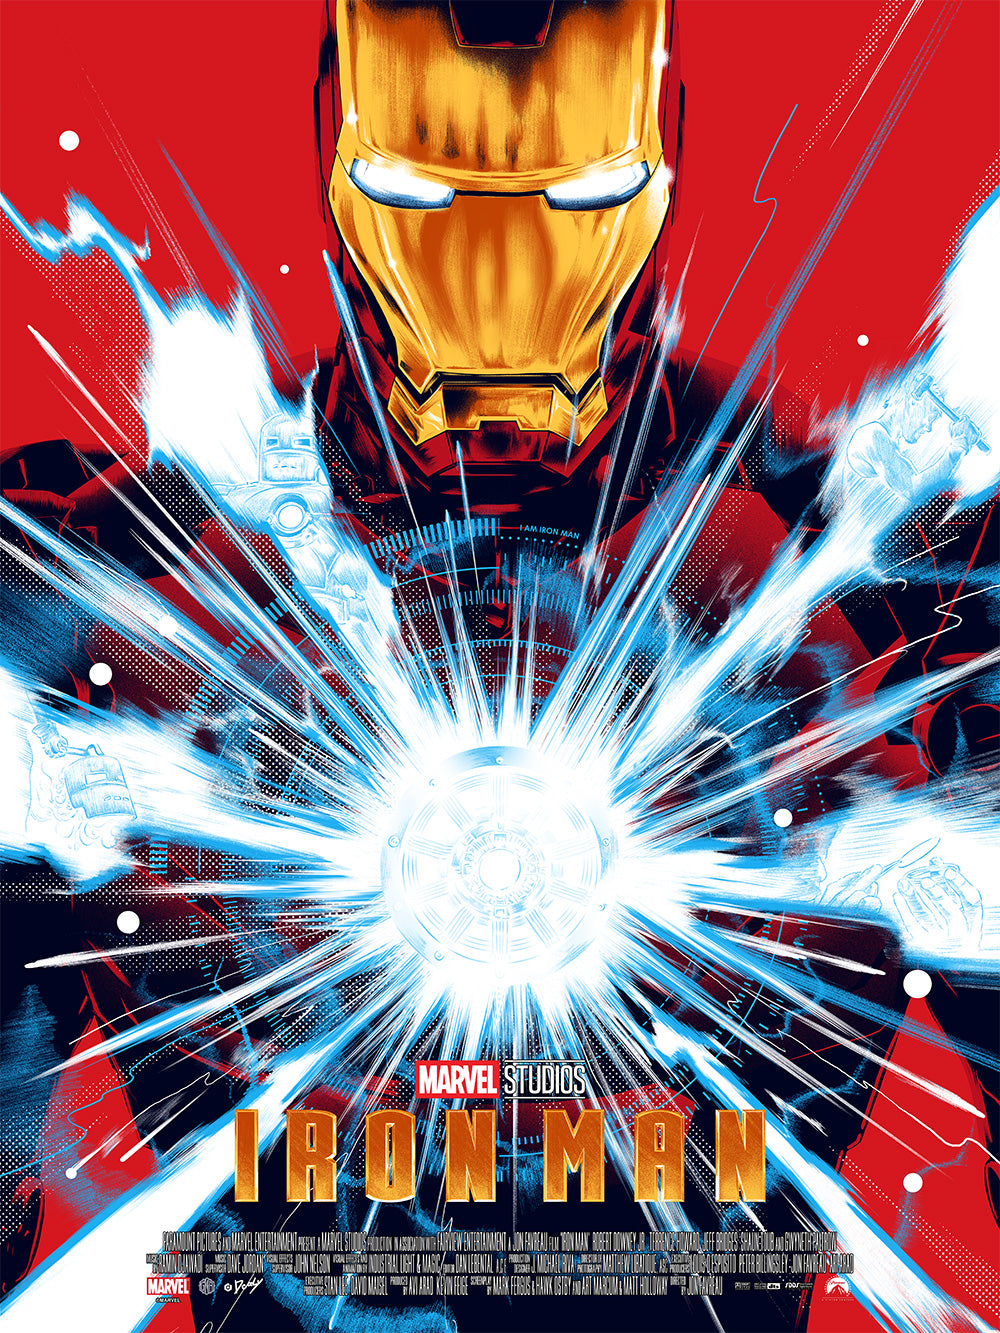 Iron Man Gold Foil Edition by Doaly